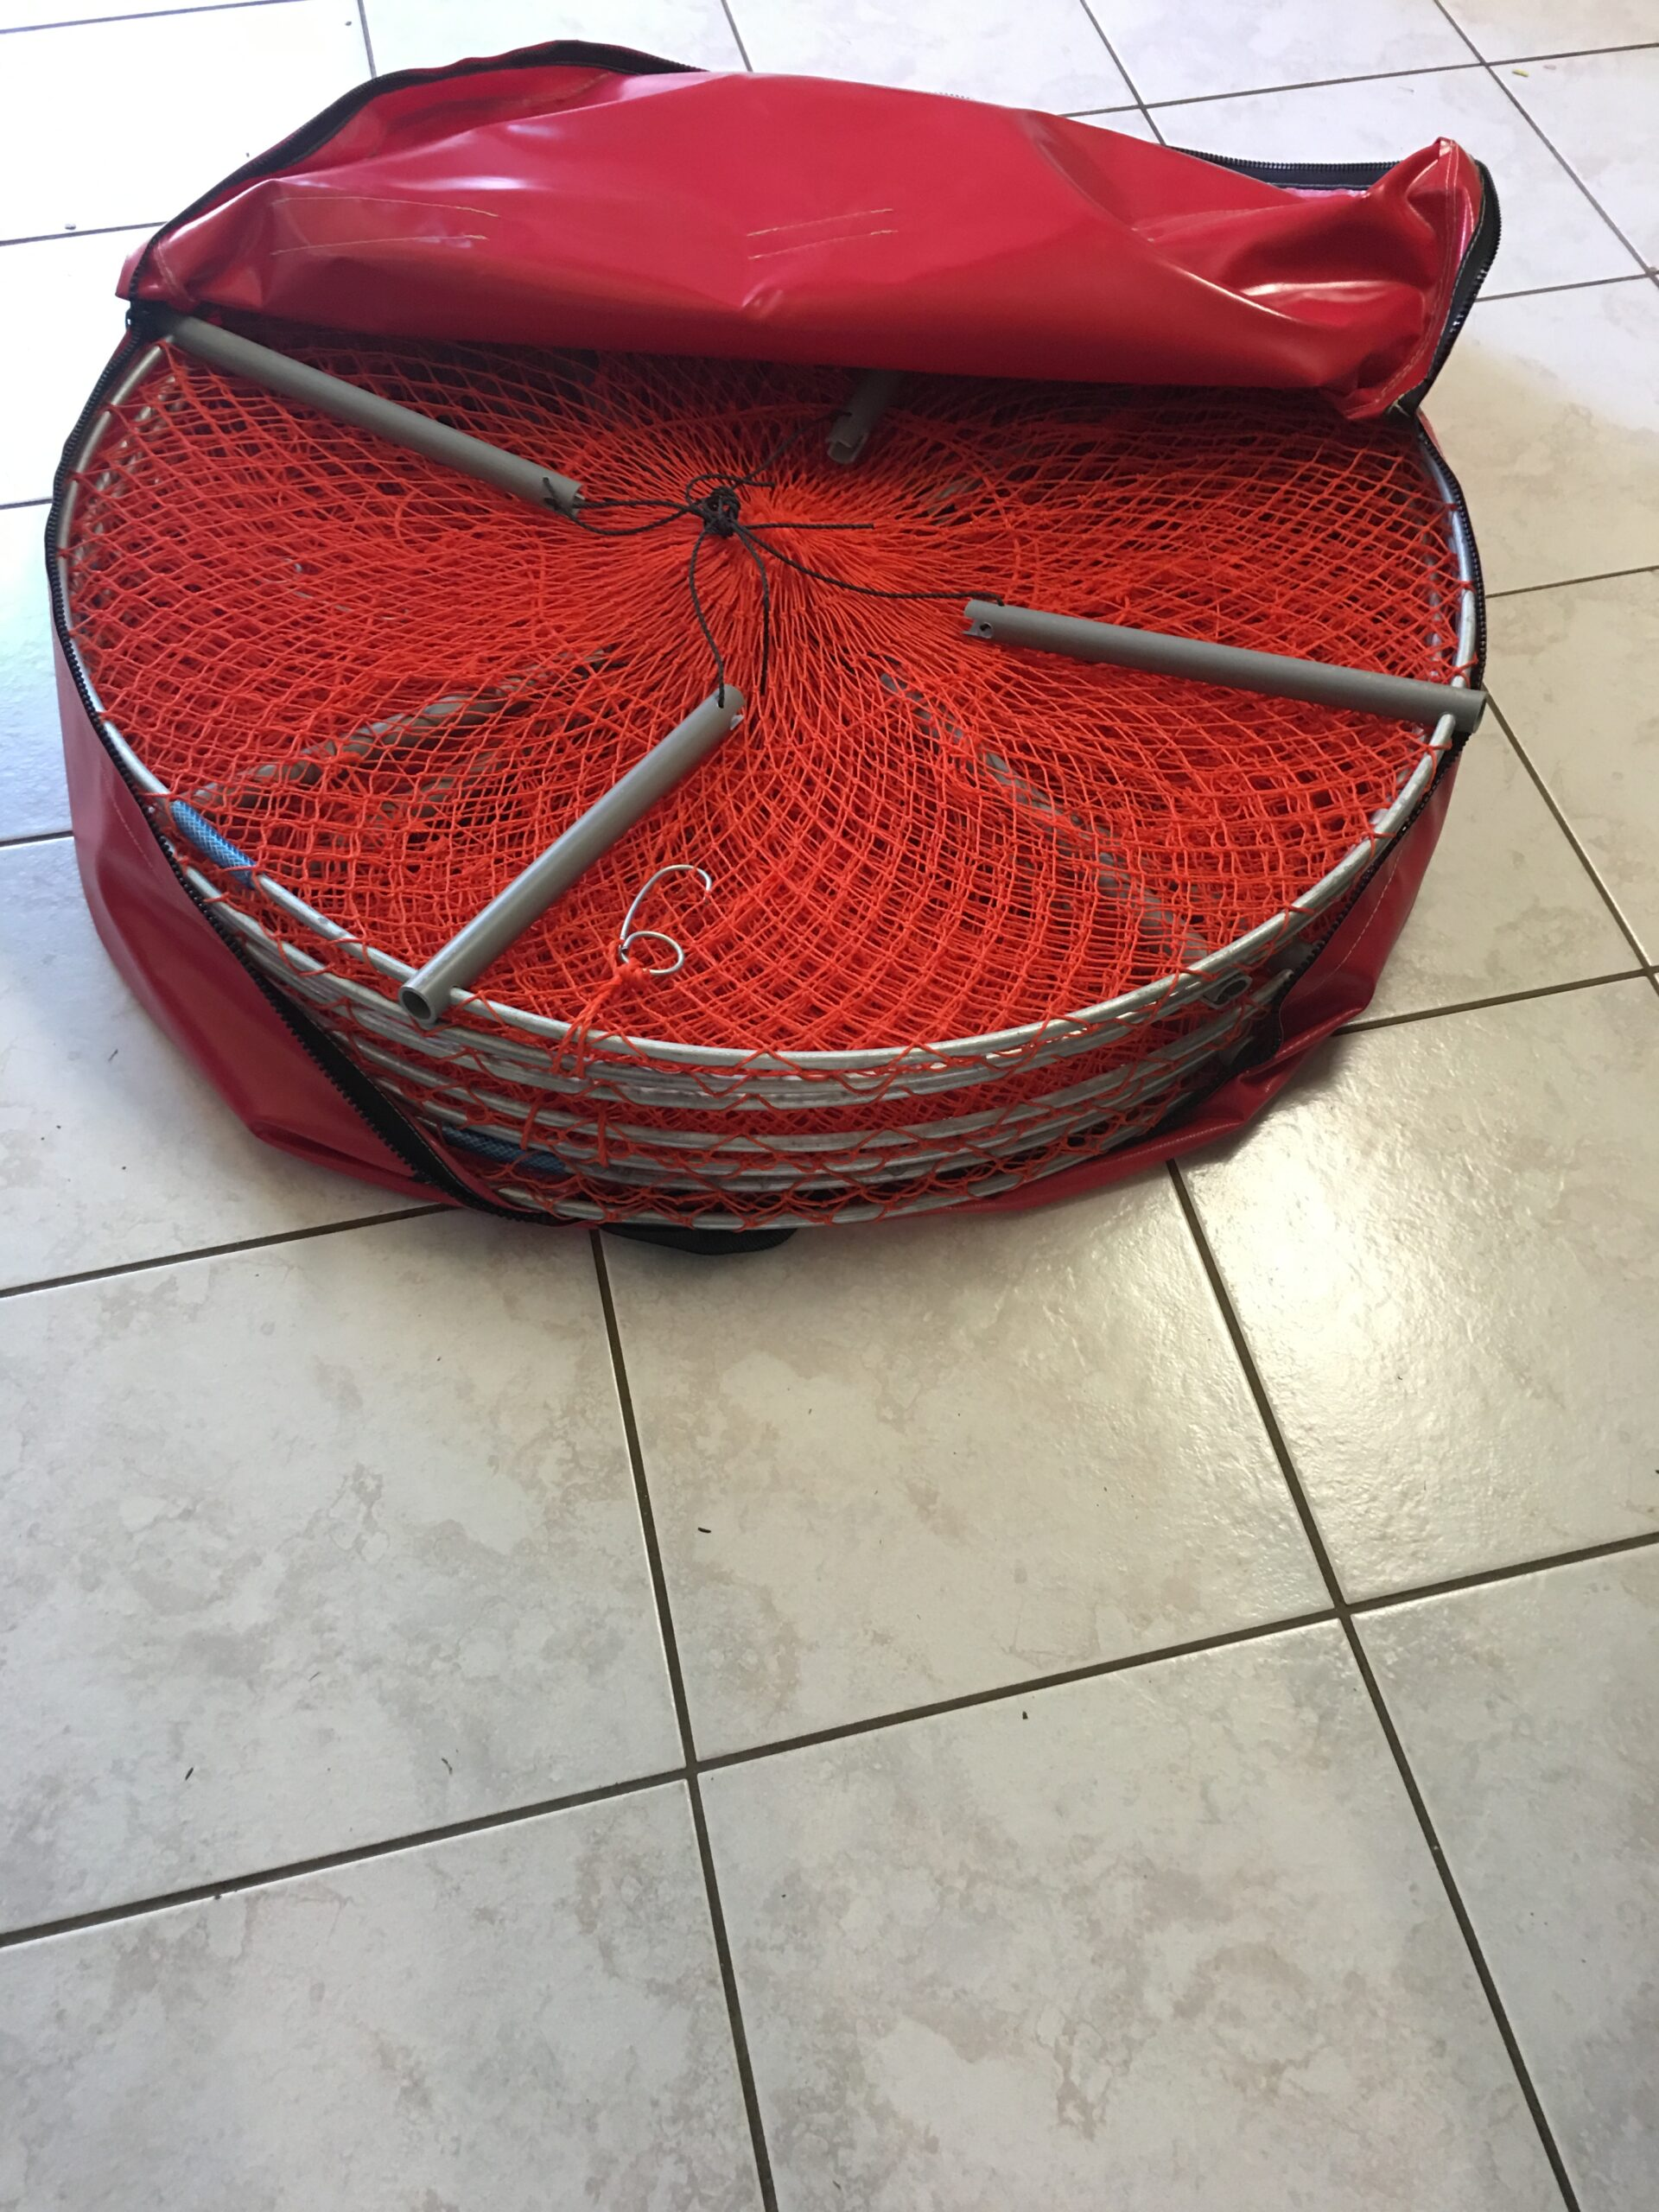 Crab Pot Bag Red Open with Pots